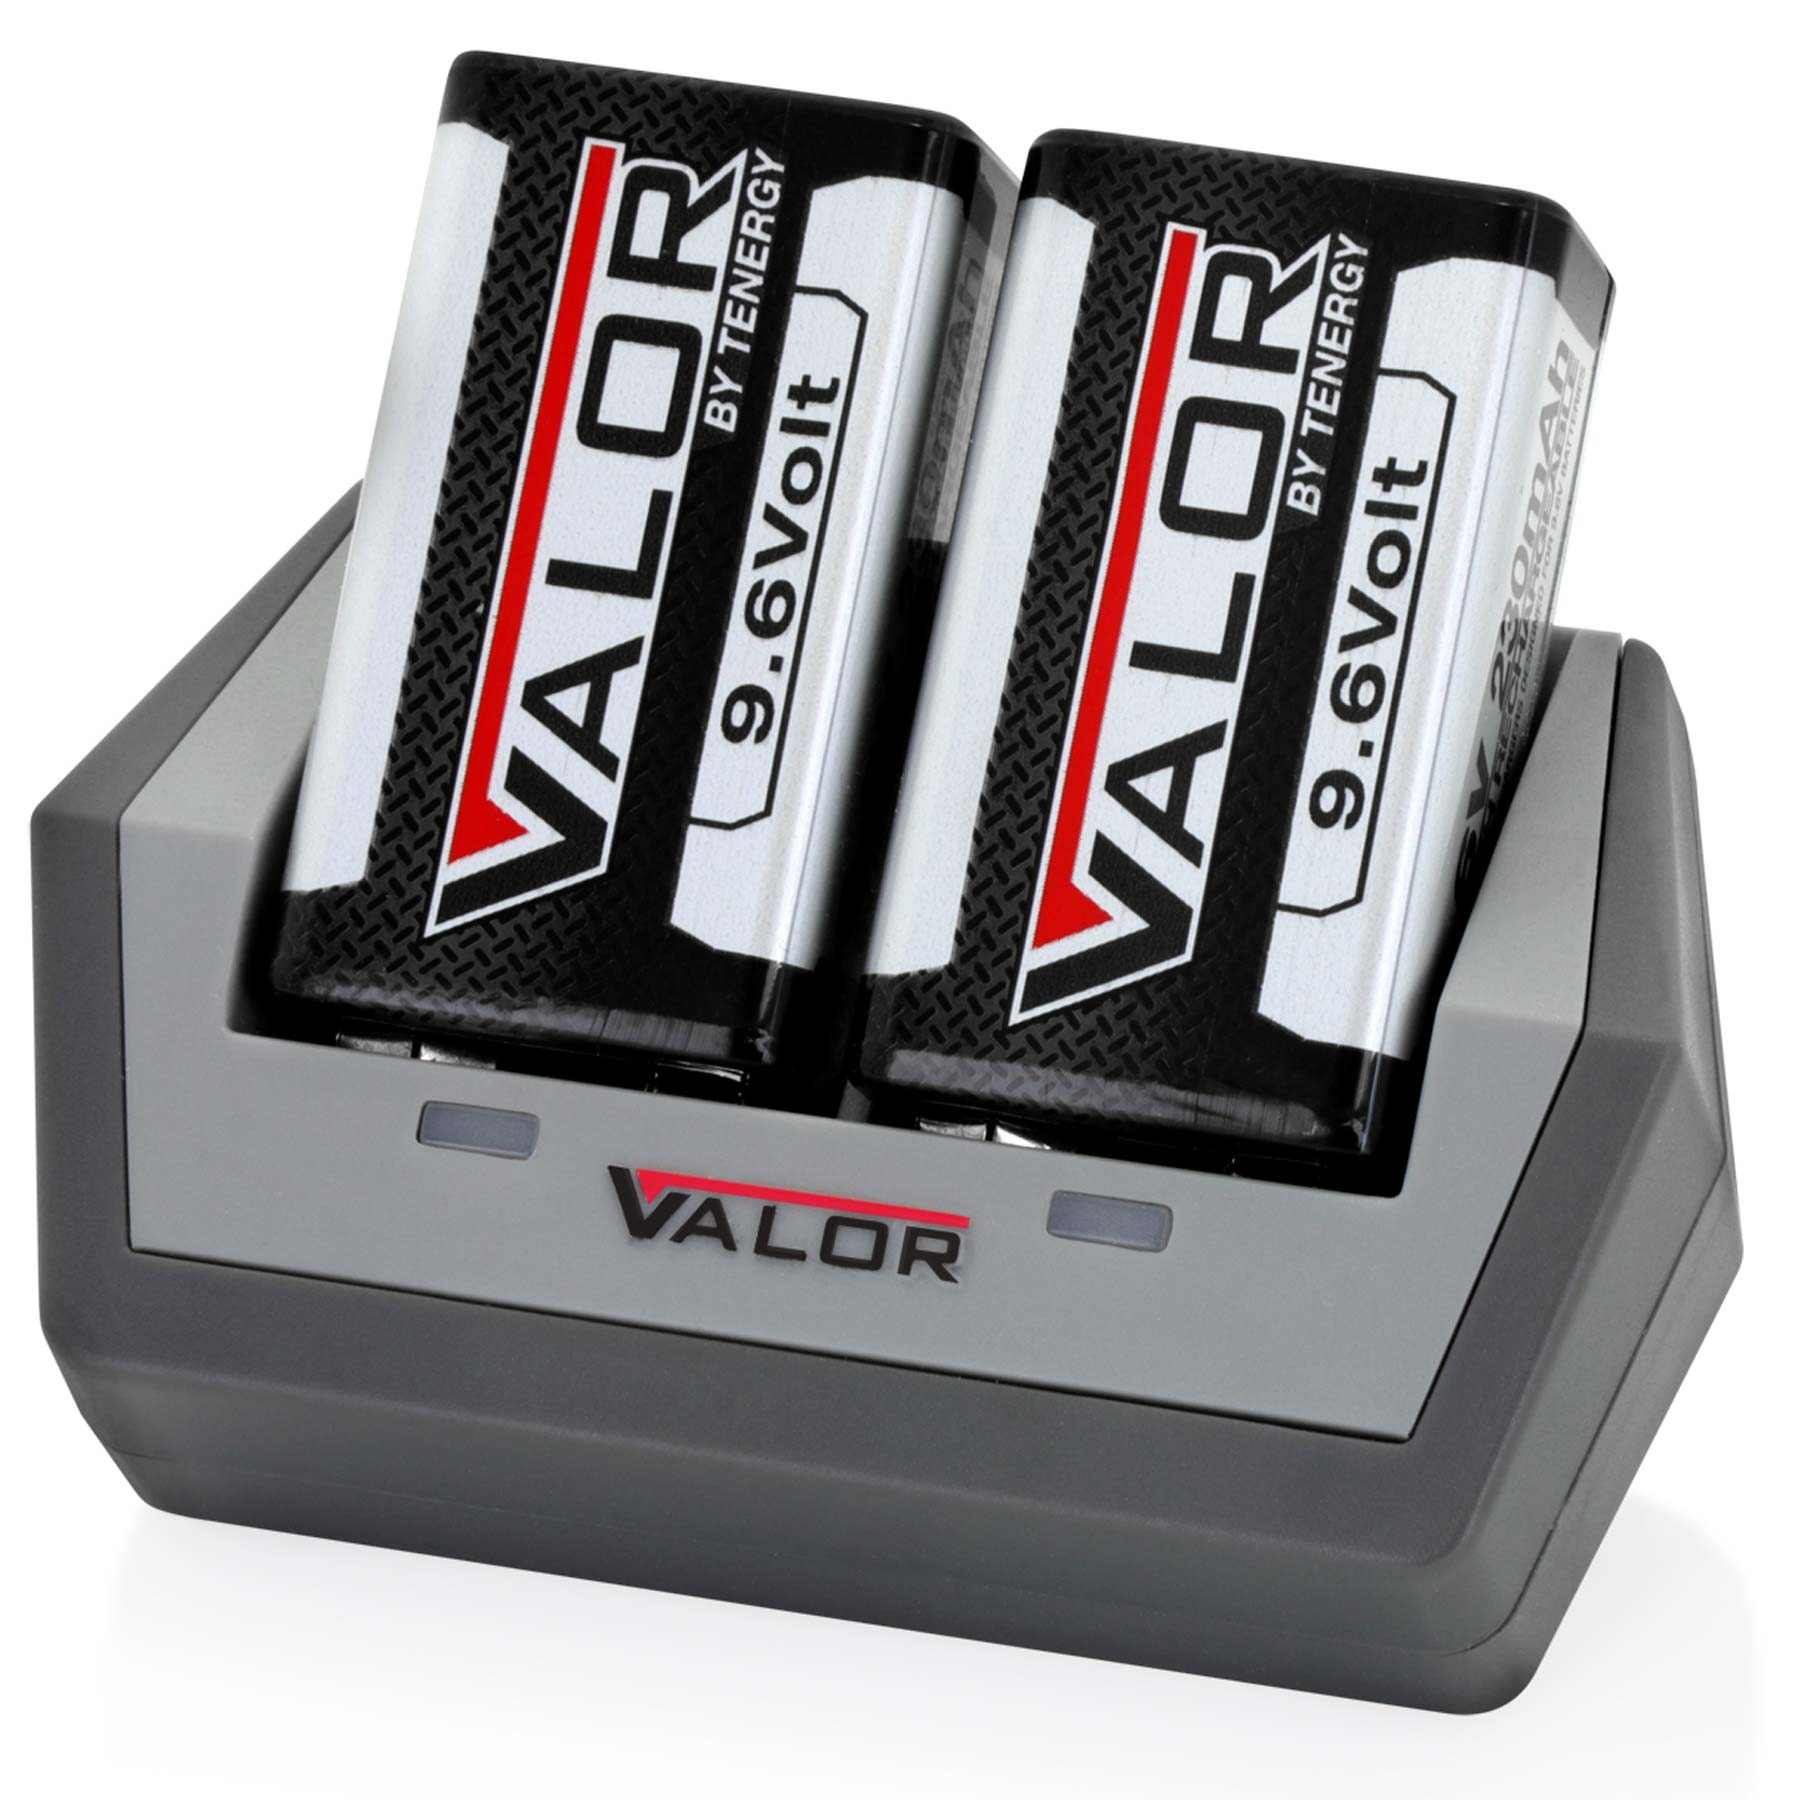 Tenergy Valor 9.6V NiMH Rechargeable Battery Kit with Charger and 2X Batteries